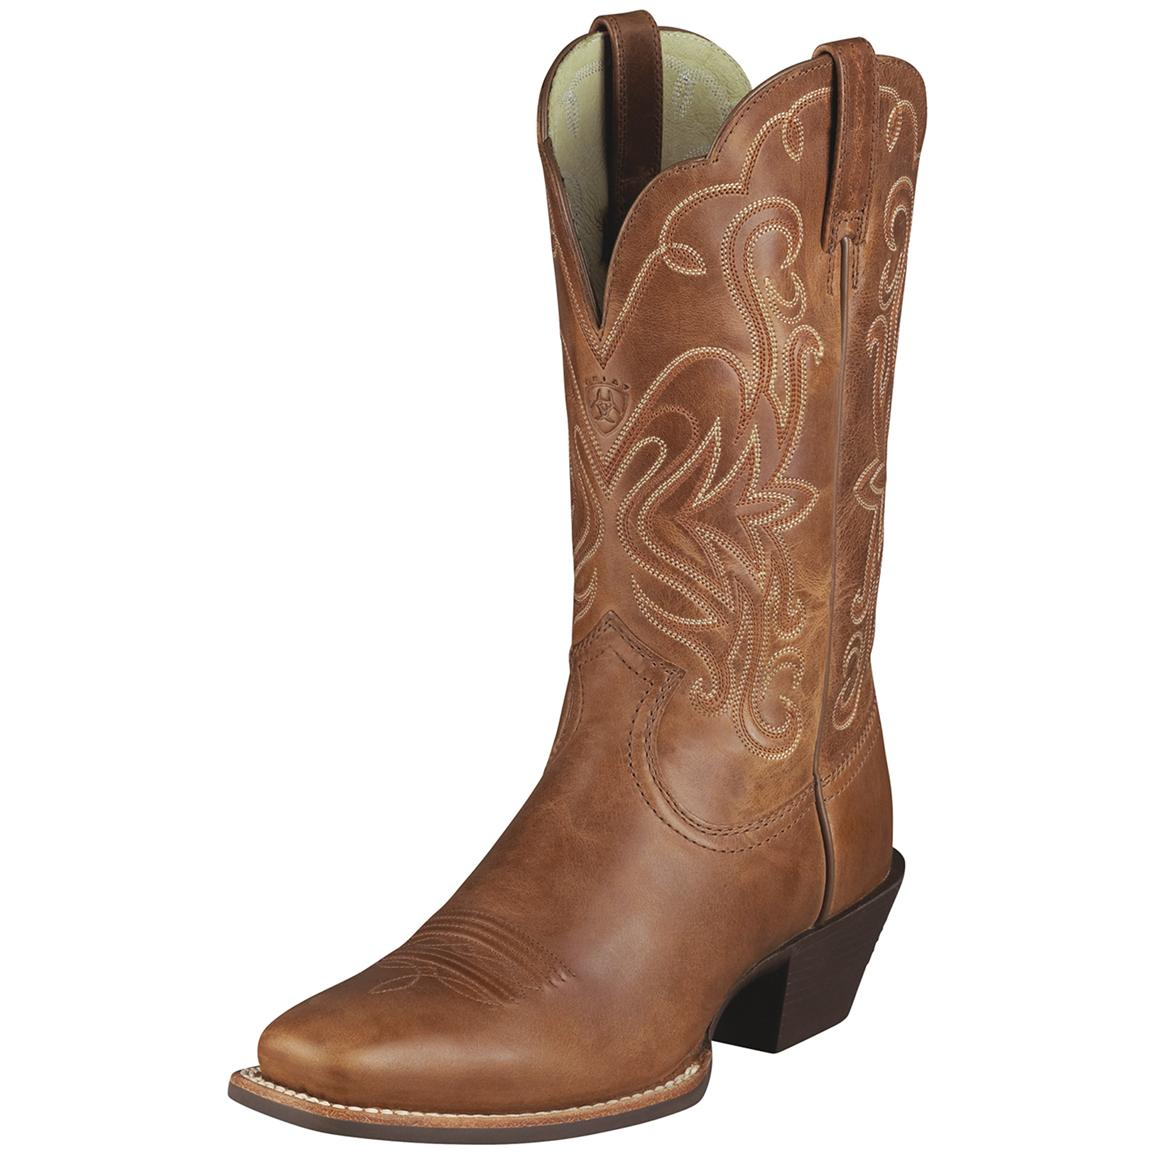 Appealing western boots for women